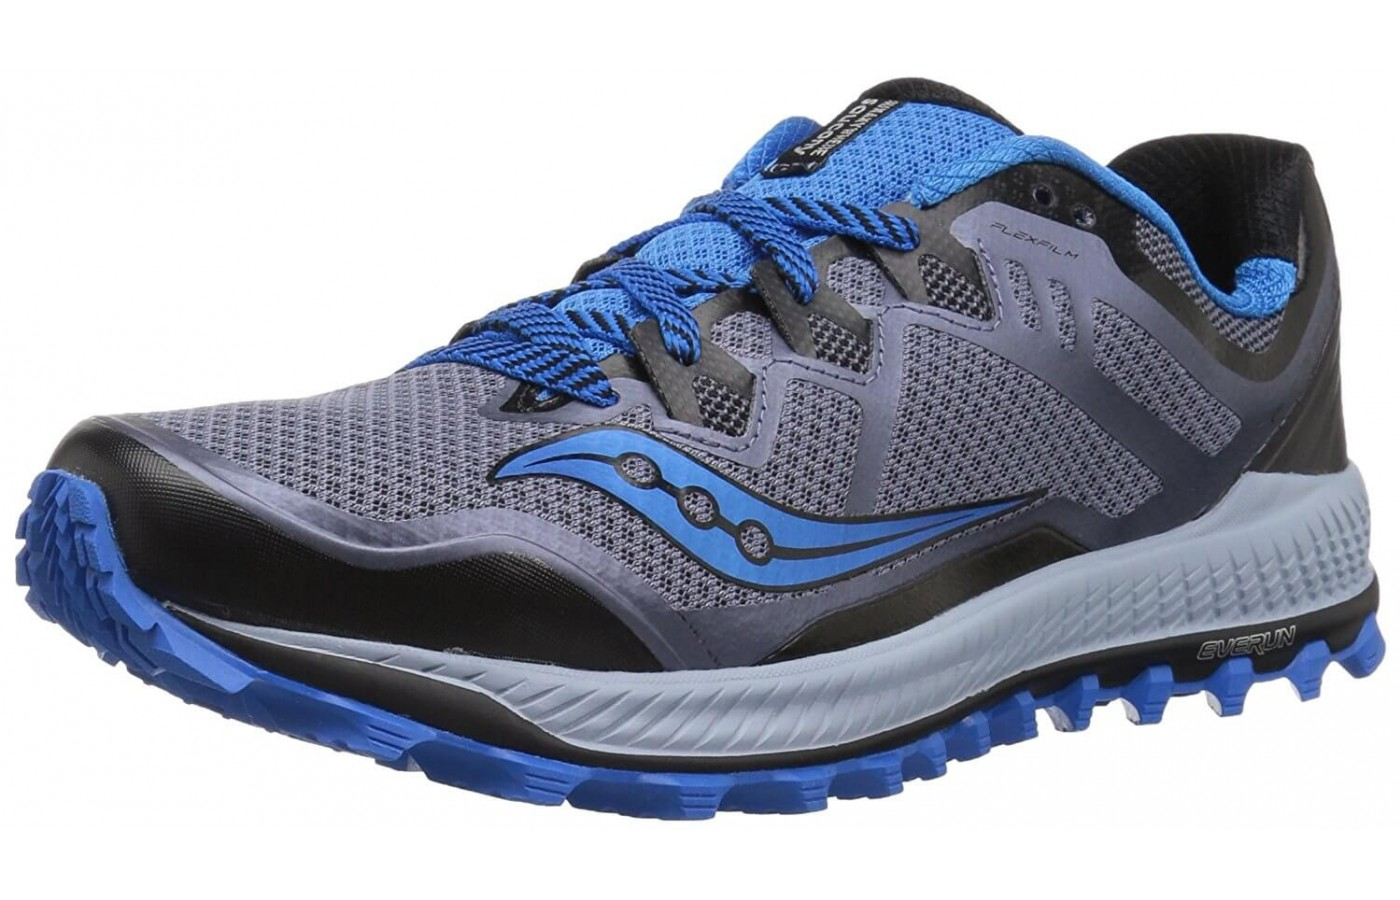 The Saucony Peregrine 8 features EVERUN cushioning